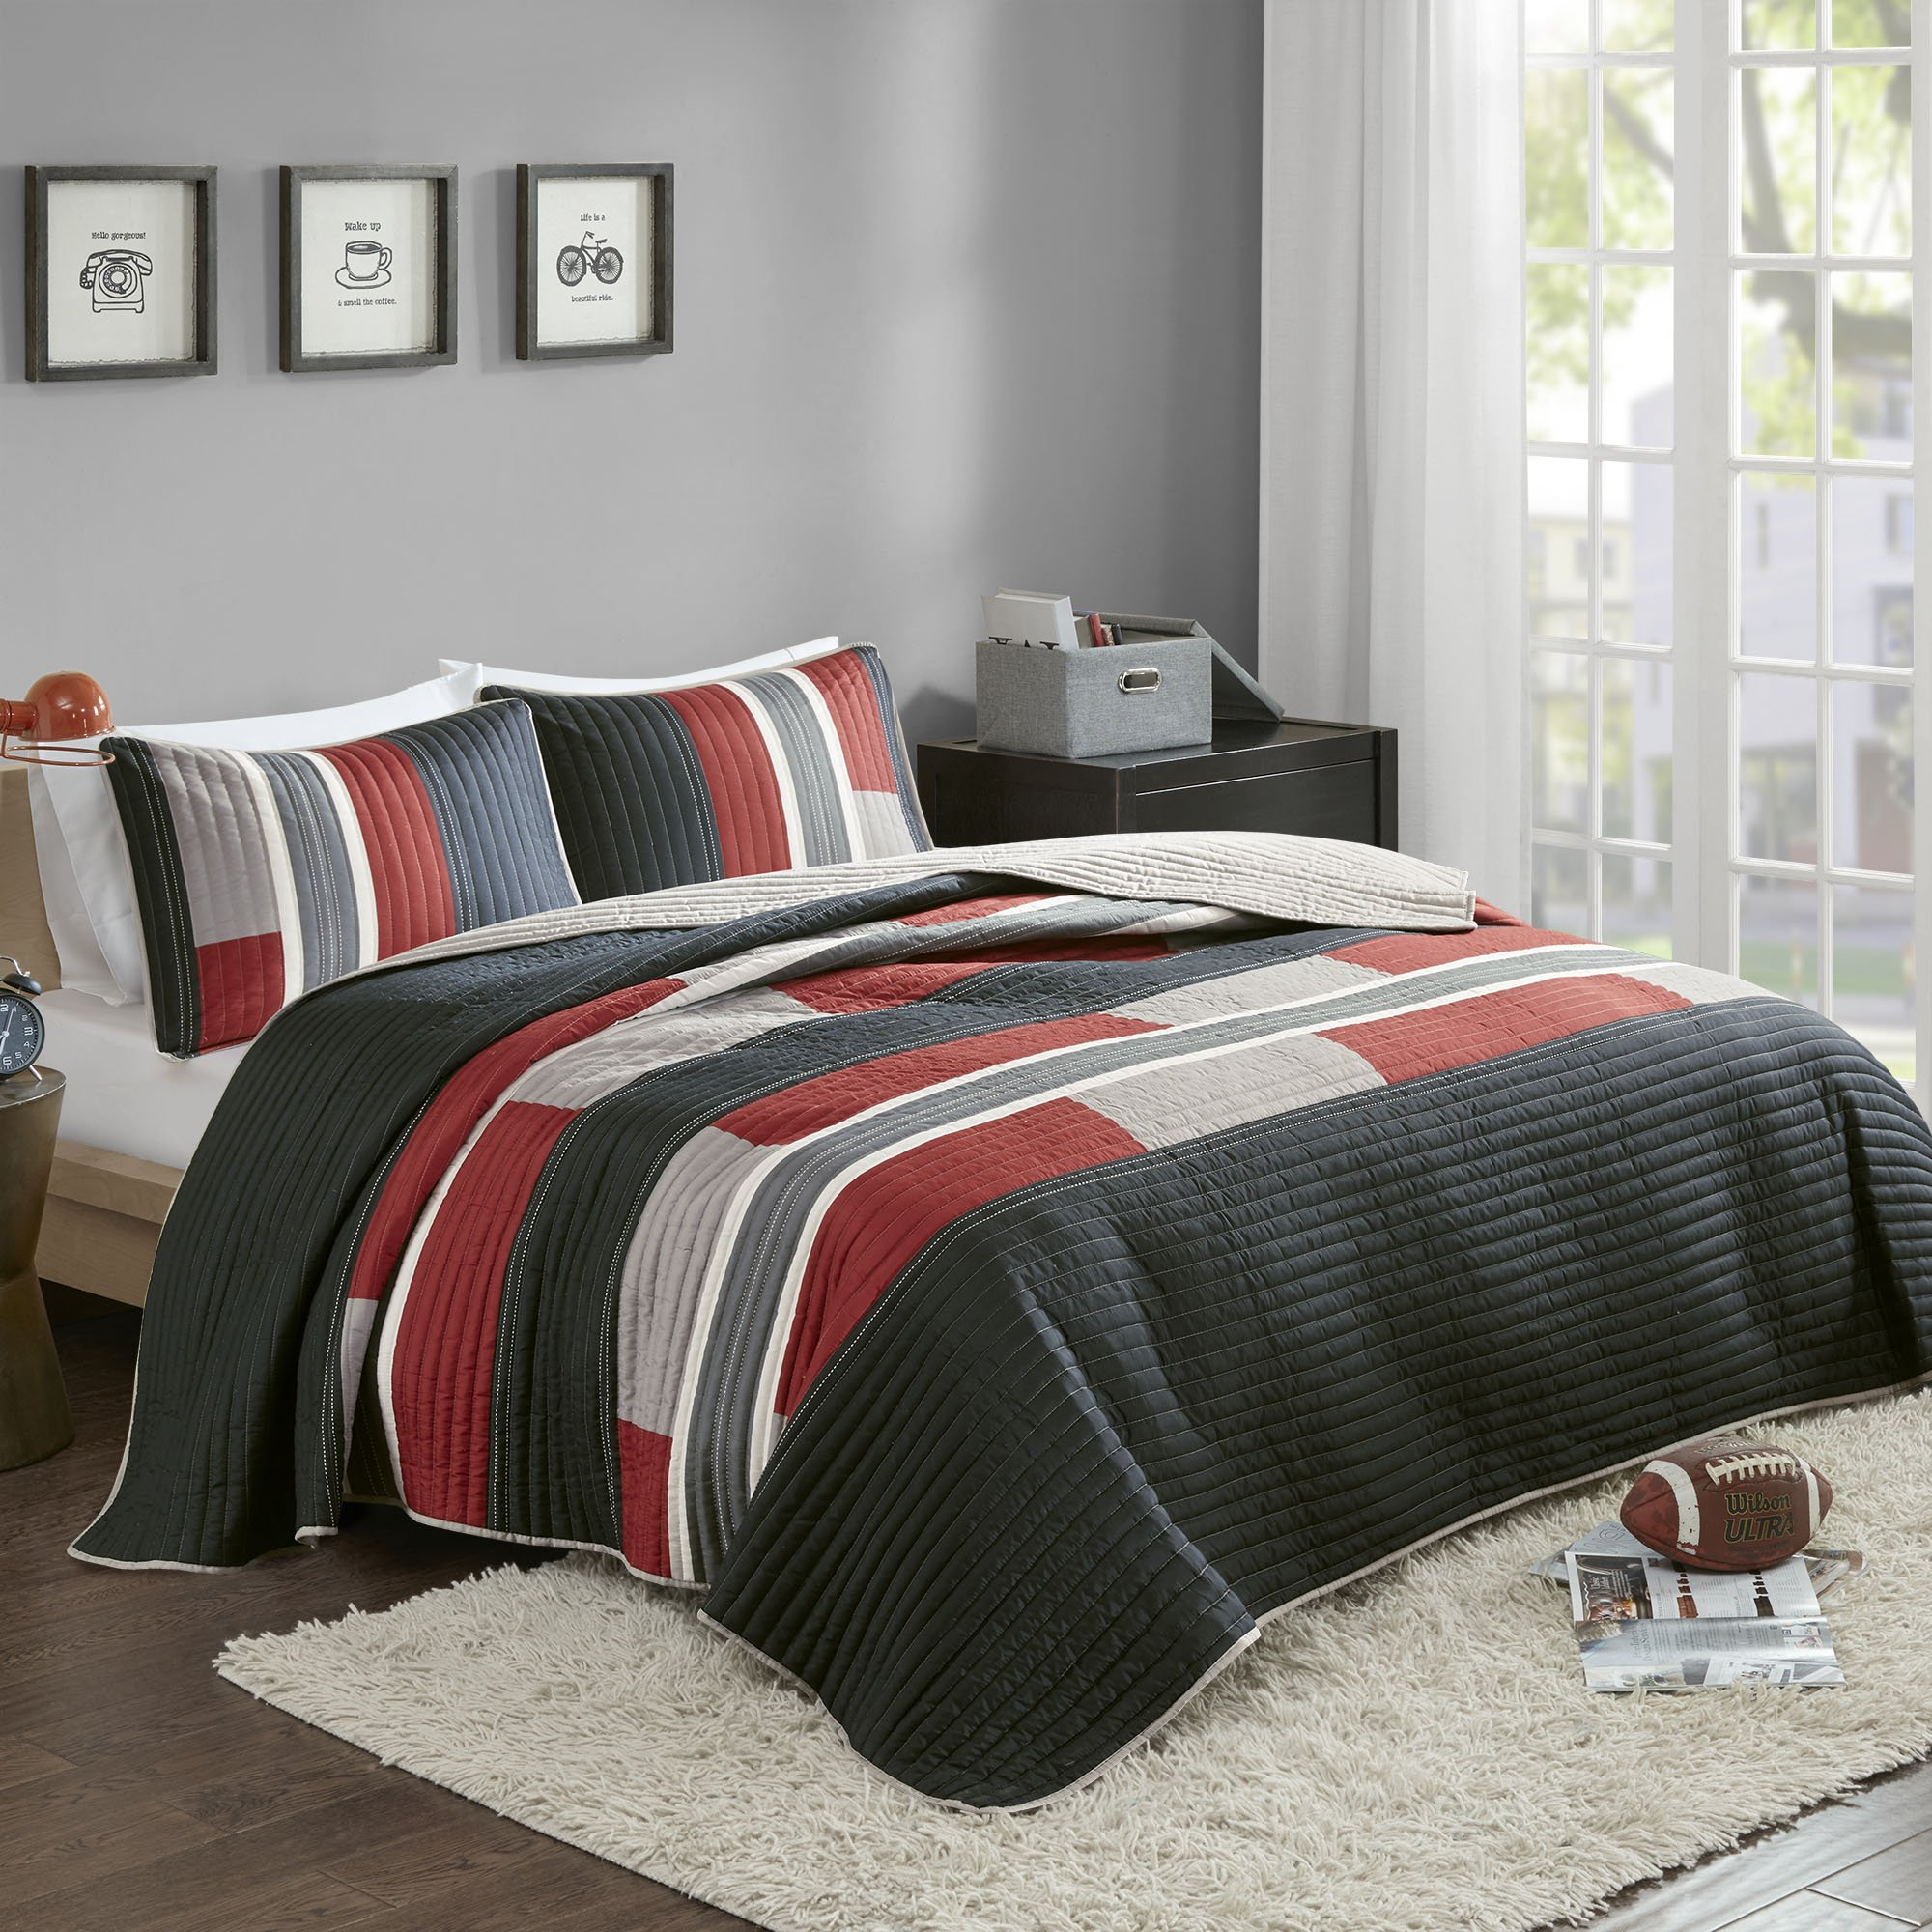 Comfort Spaces Bedspreads Twin XL Size Mini Quilt Set - Casual Pierre 2 Piece Kids Lightweight Filling Bedding Cover - Black/Red Patchwork Print - All Season Hypoallergenic - Fits Twin/Twin XL by Comfort Spaces